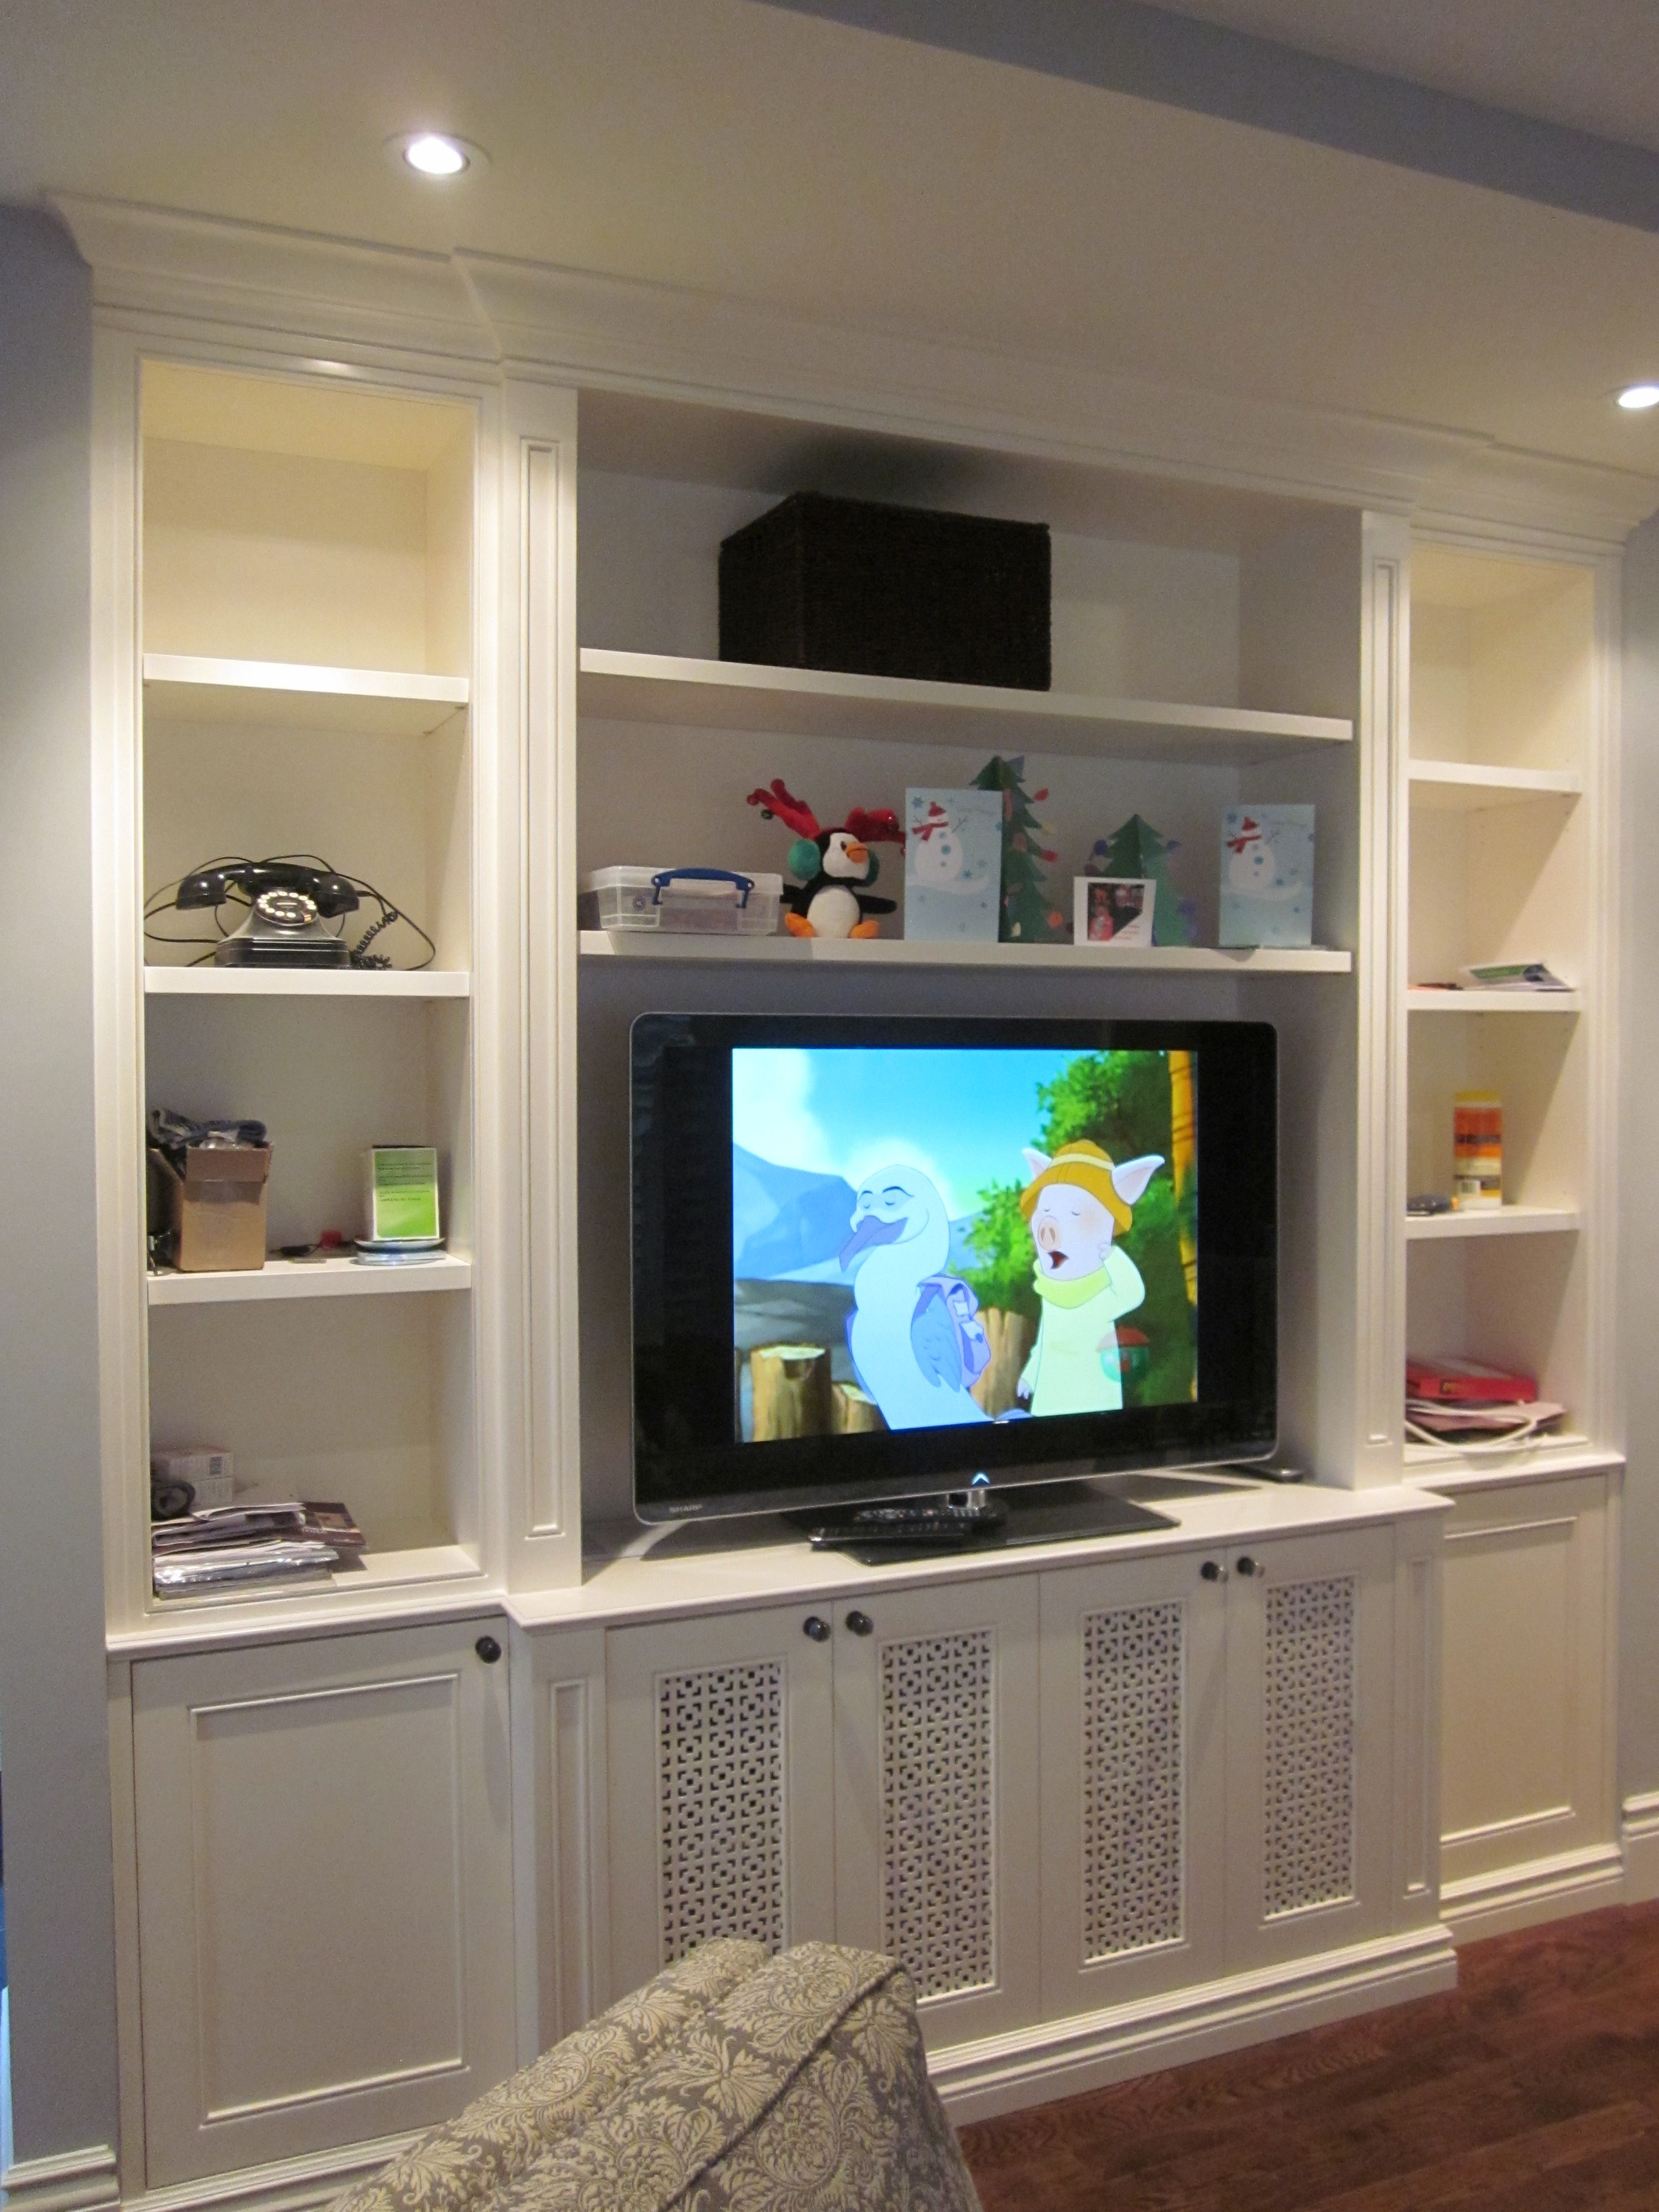 Pin By Kath Gilson On Kitchen Mom Dad Built In Tv Wall Unit